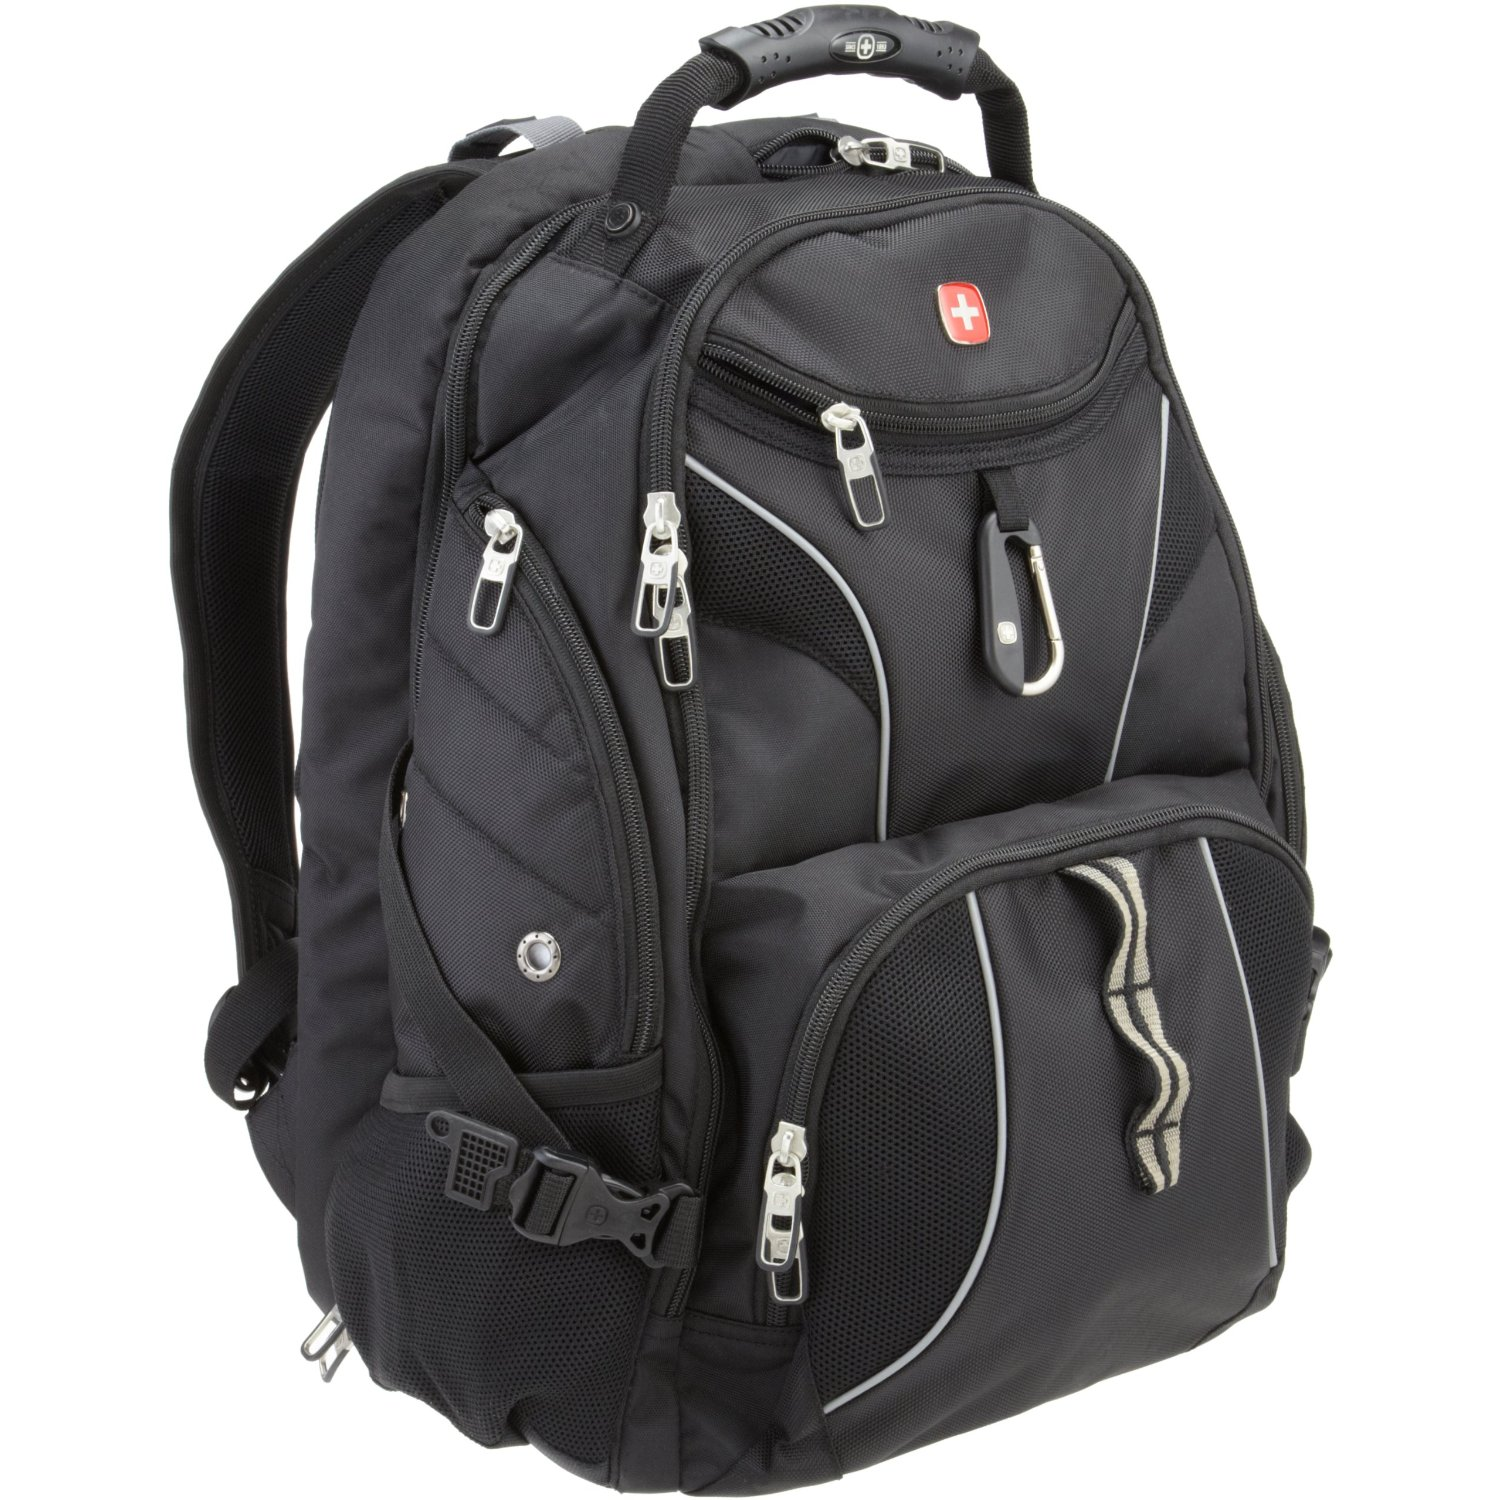 Best Backpacks For Travel z1woh2L1